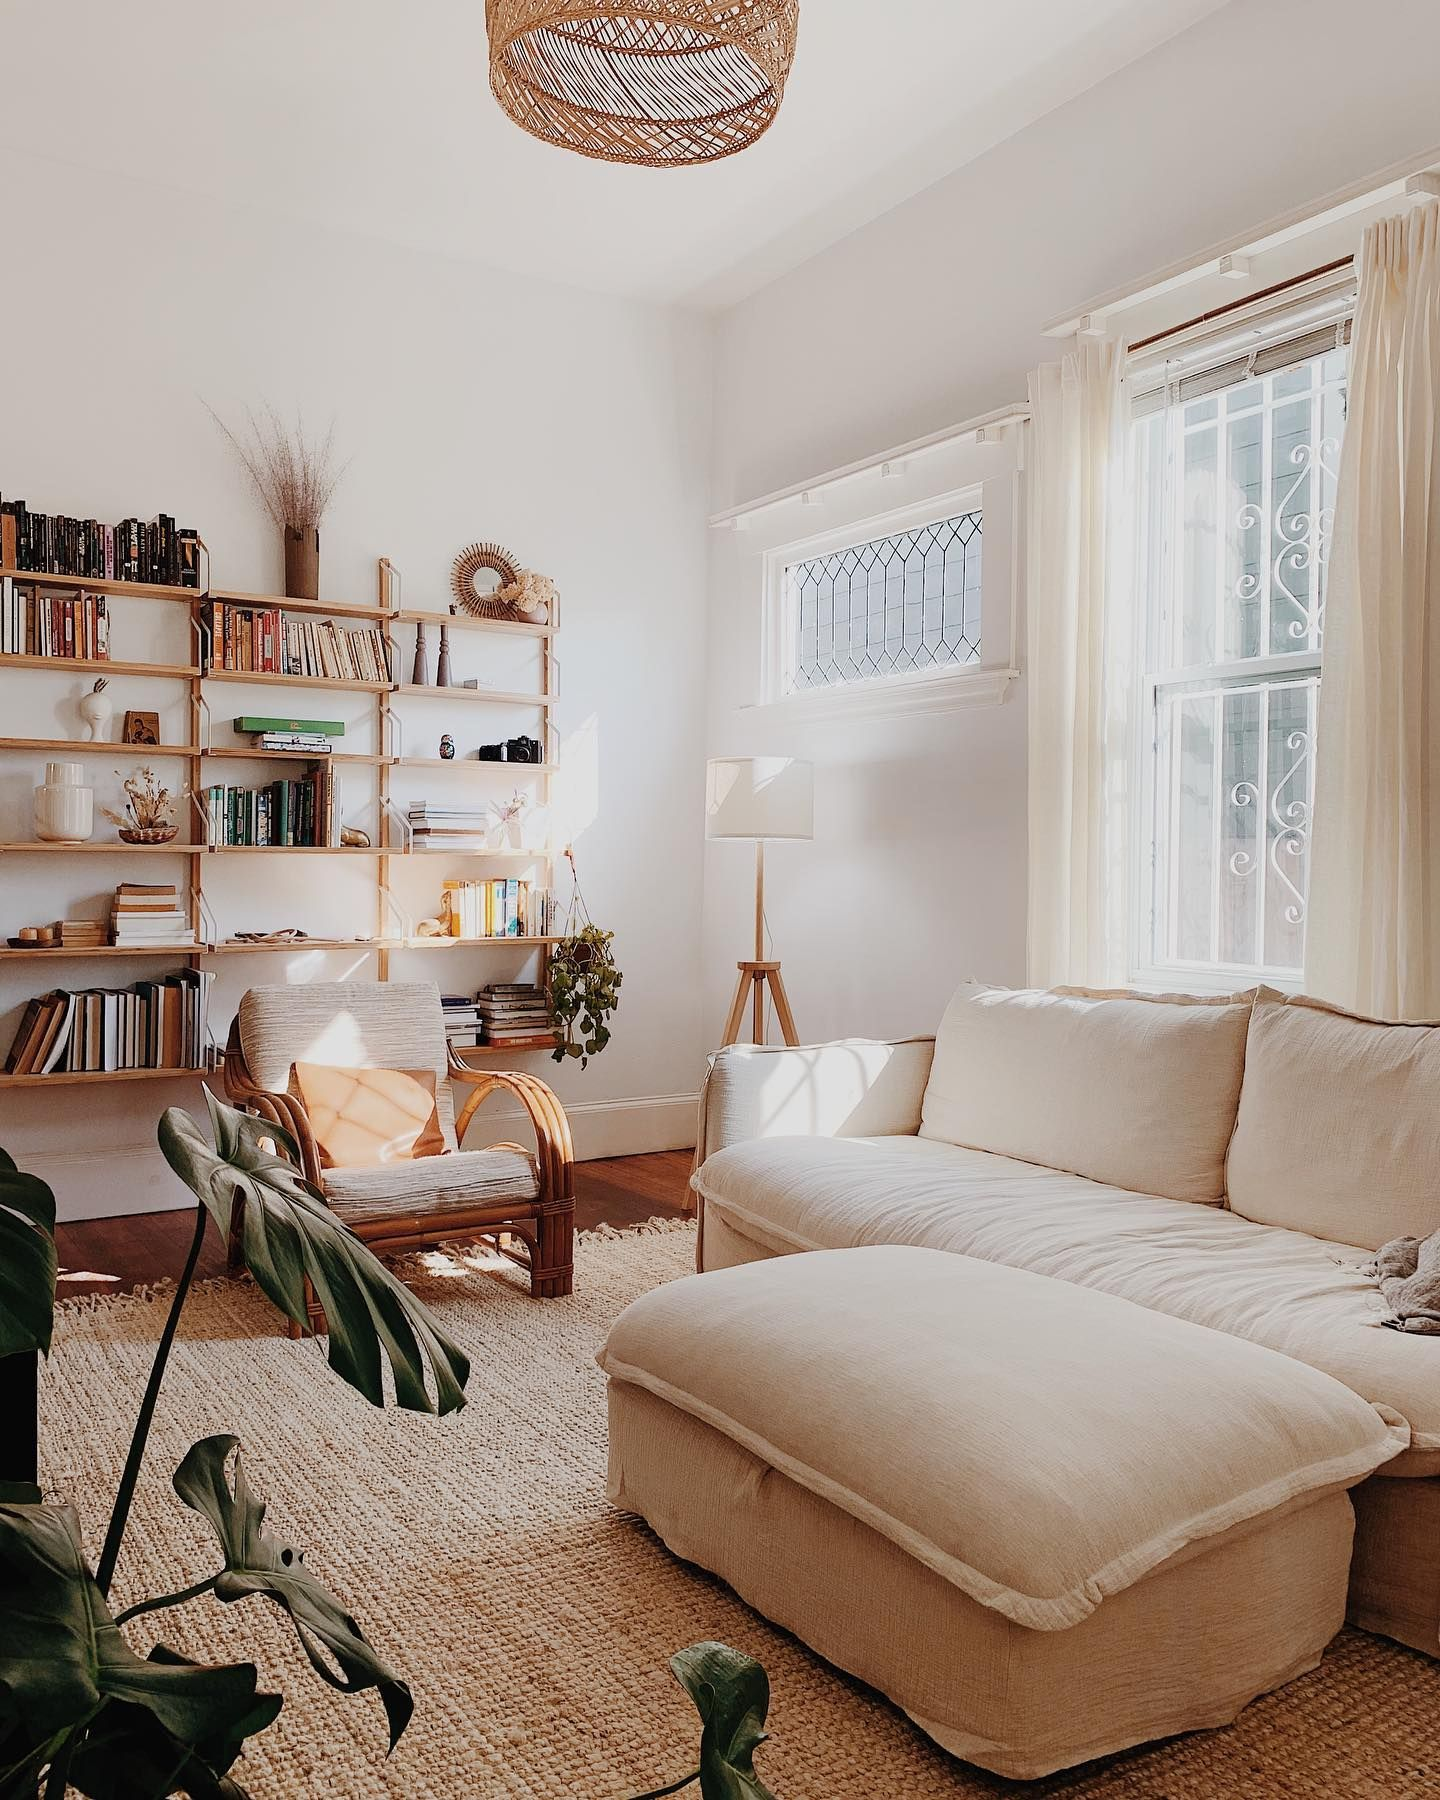 Sixpenny Online Furniture Store W Unique Designs In 2020 Perfect Living Room Decor Minimalist Living Room Living Room Decor Modern #small #living #room #style